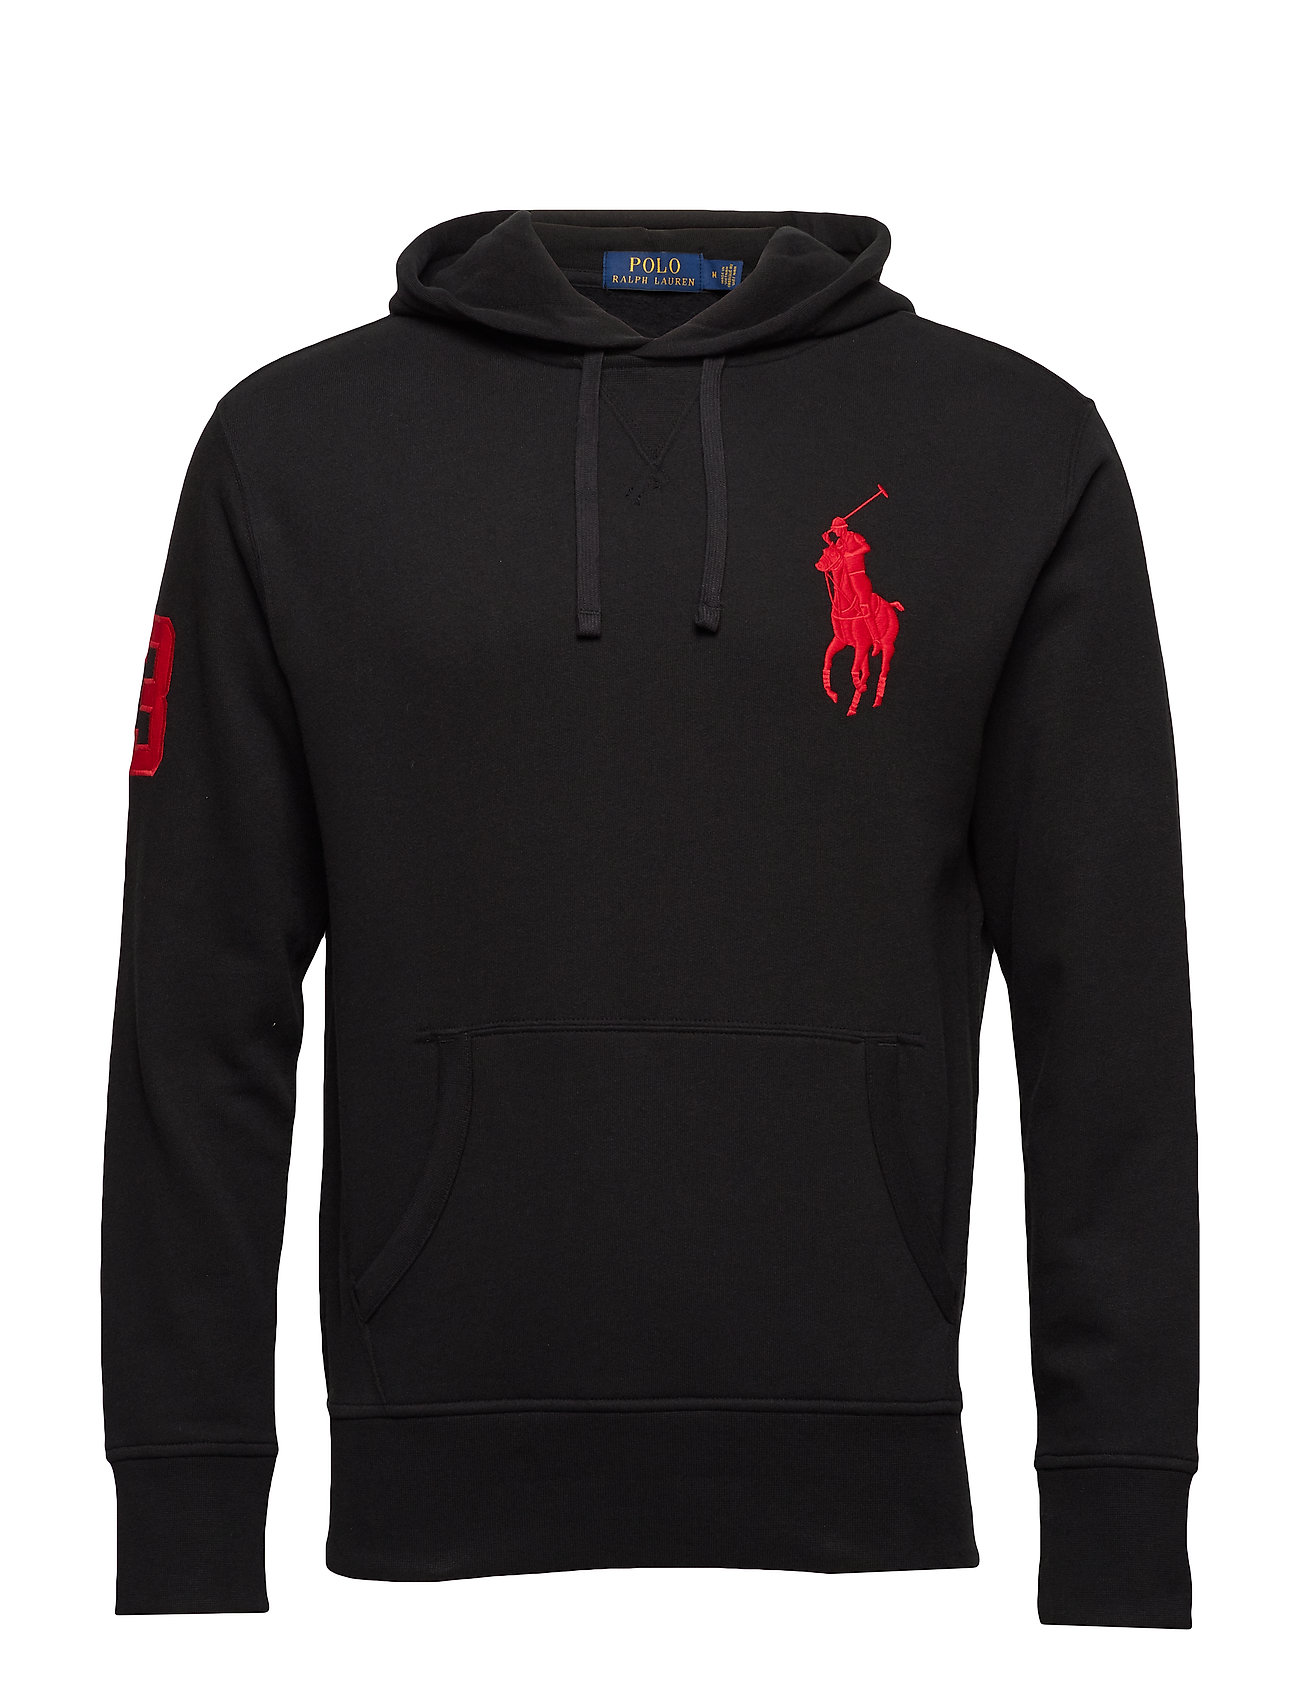 Polo Ralph Lauren LSPOHOODM1-LONG SLEEVE-KNIT - POLO BLACK